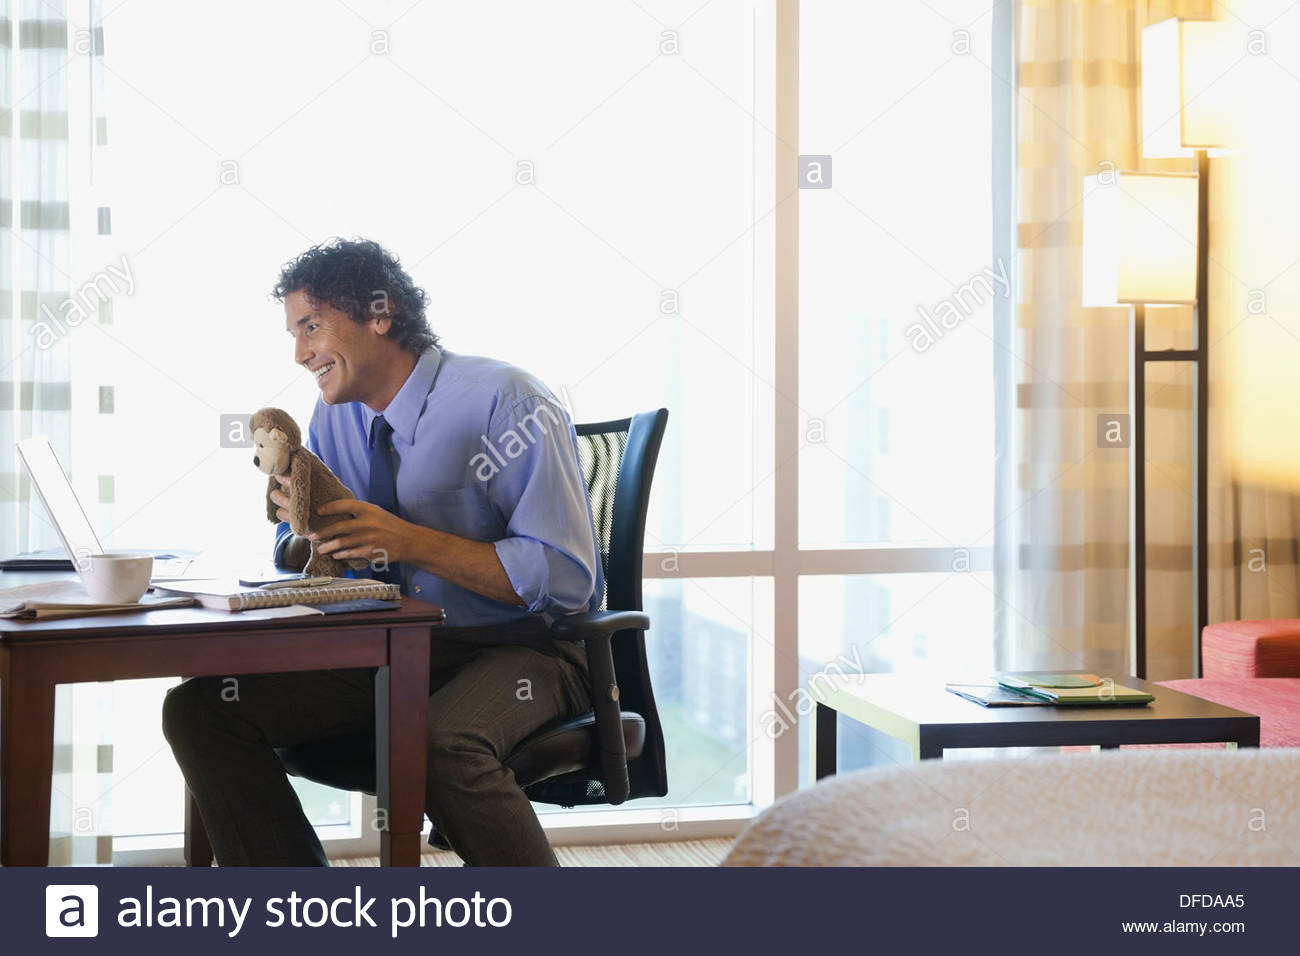 Man in hotel room on business trip video chatting with kids at home - Stock Image